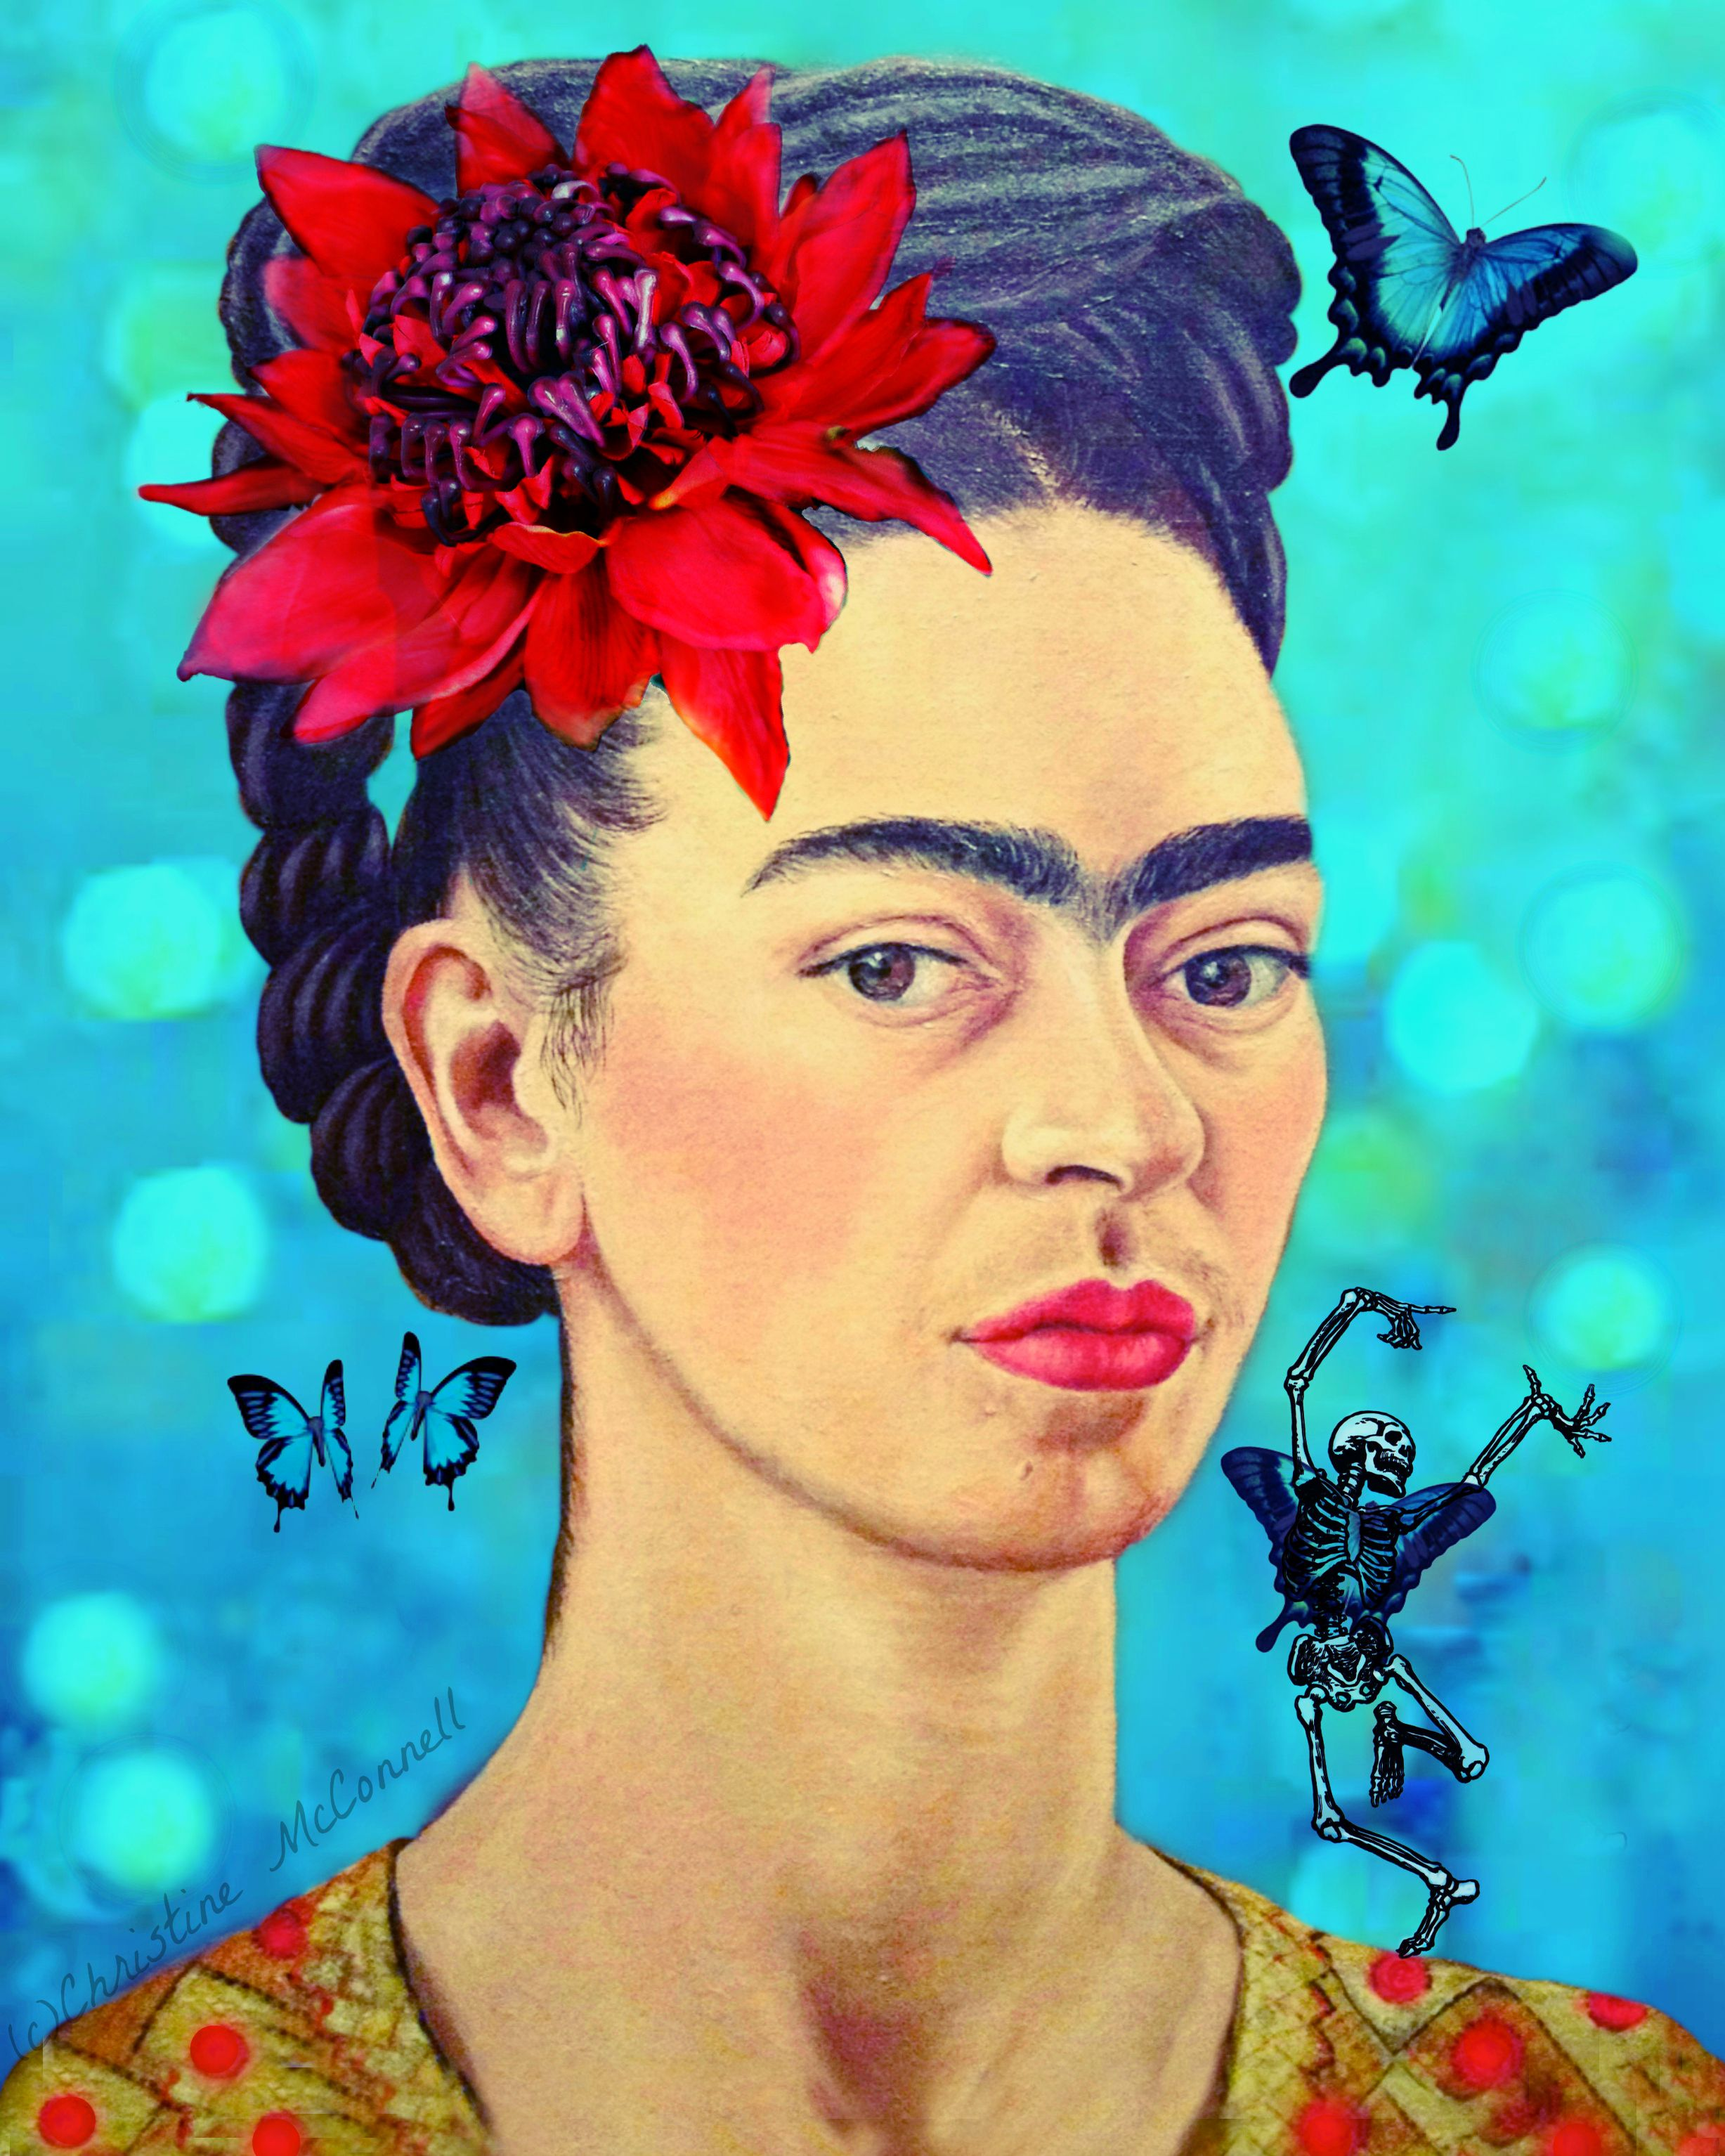 frida kahlo art print with waratah butterflies and dancing skeleton available from. Black Bedroom Furniture Sets. Home Design Ideas